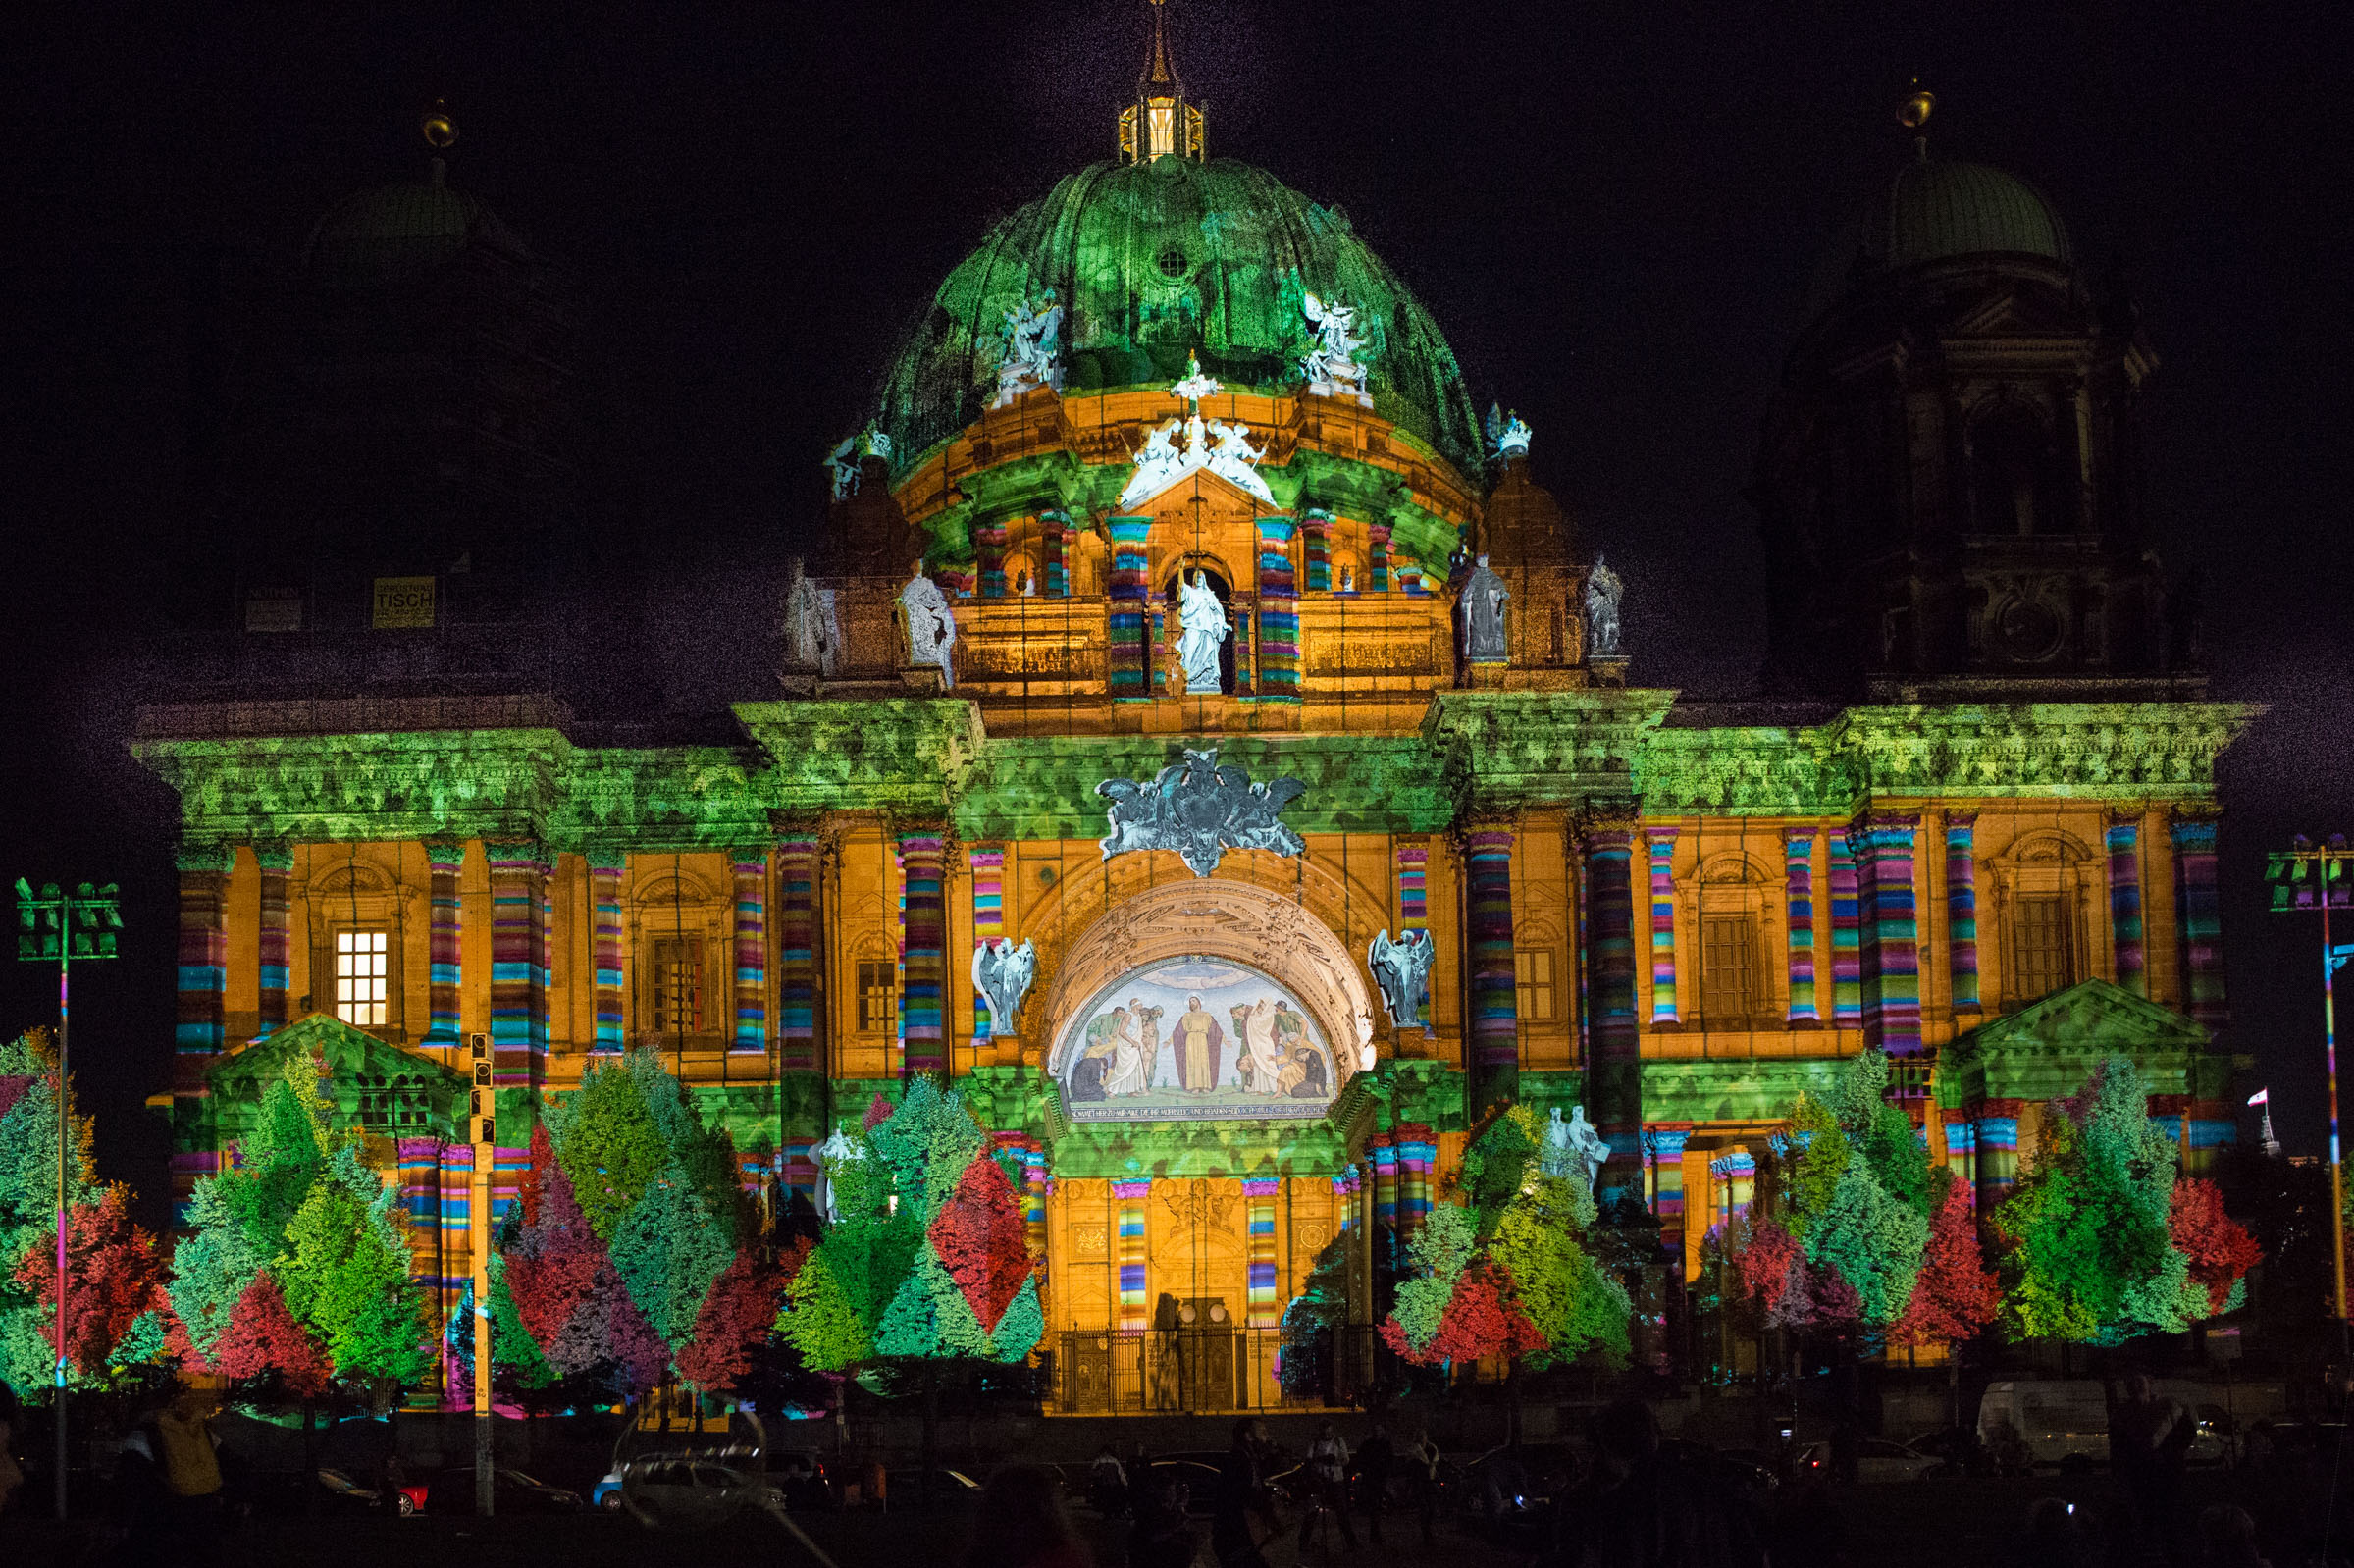 Festival of Light Berlin 2018